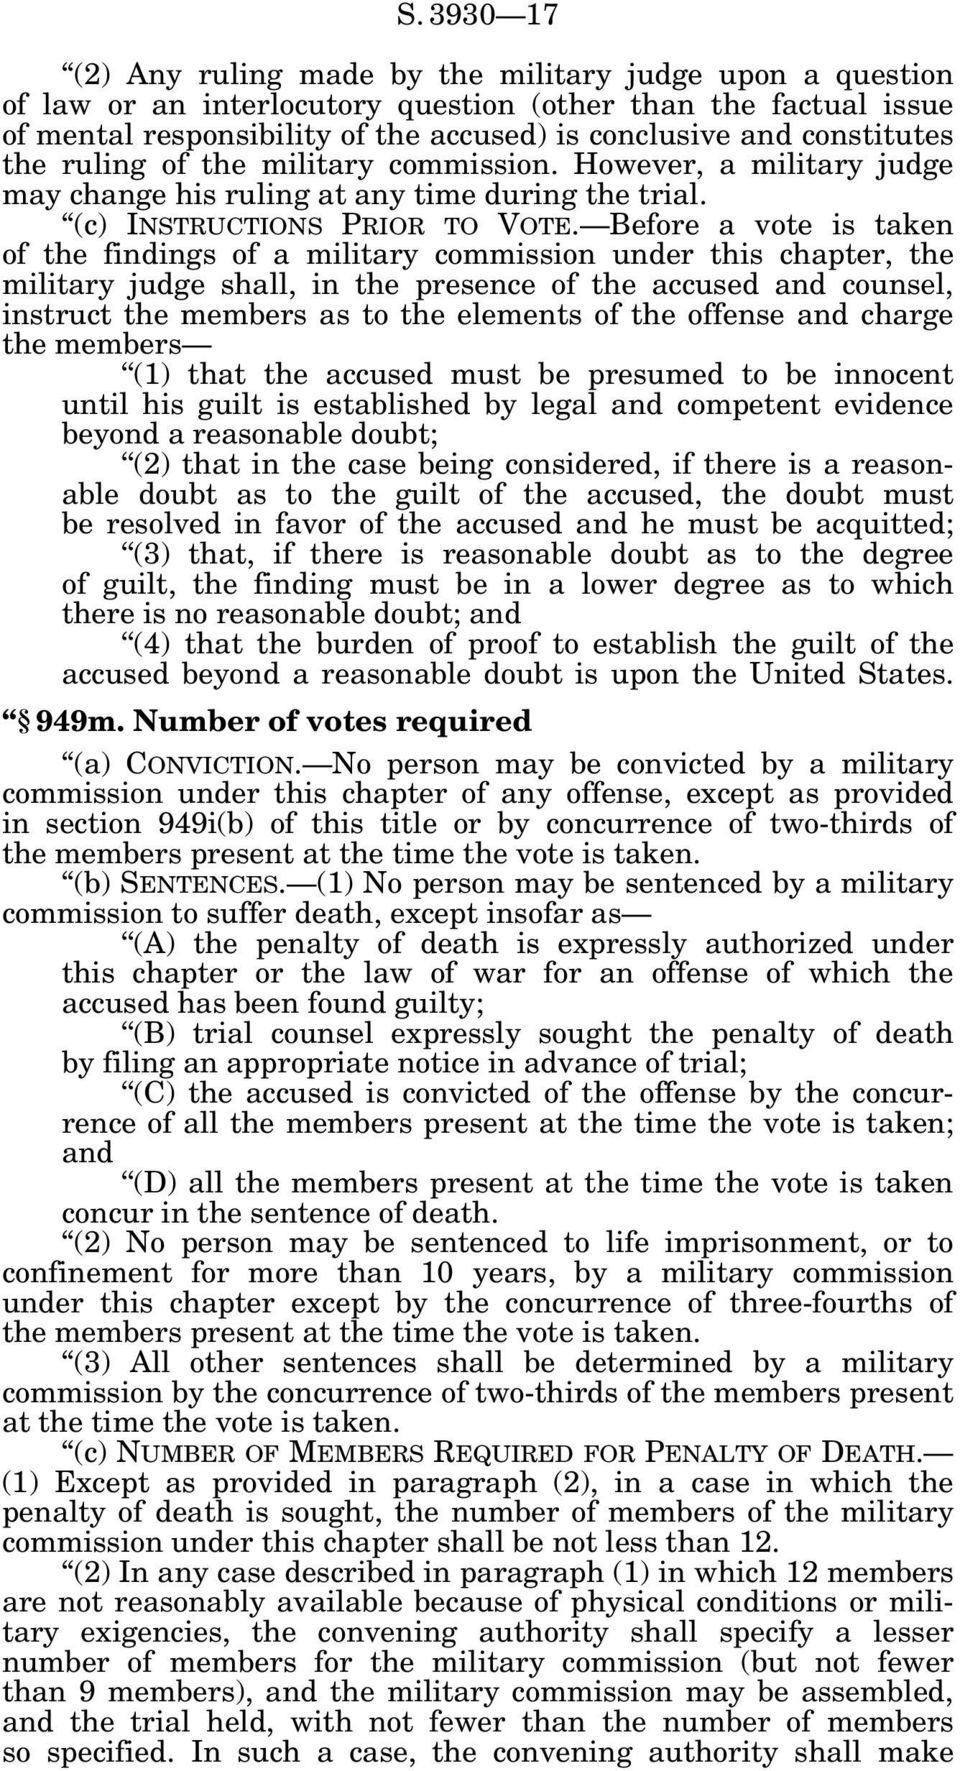 Before a vote is taken of the findings of a military commission under this chapter, the military judge shall, in the presence of the accused and counsel, instruct the members as to the elements of